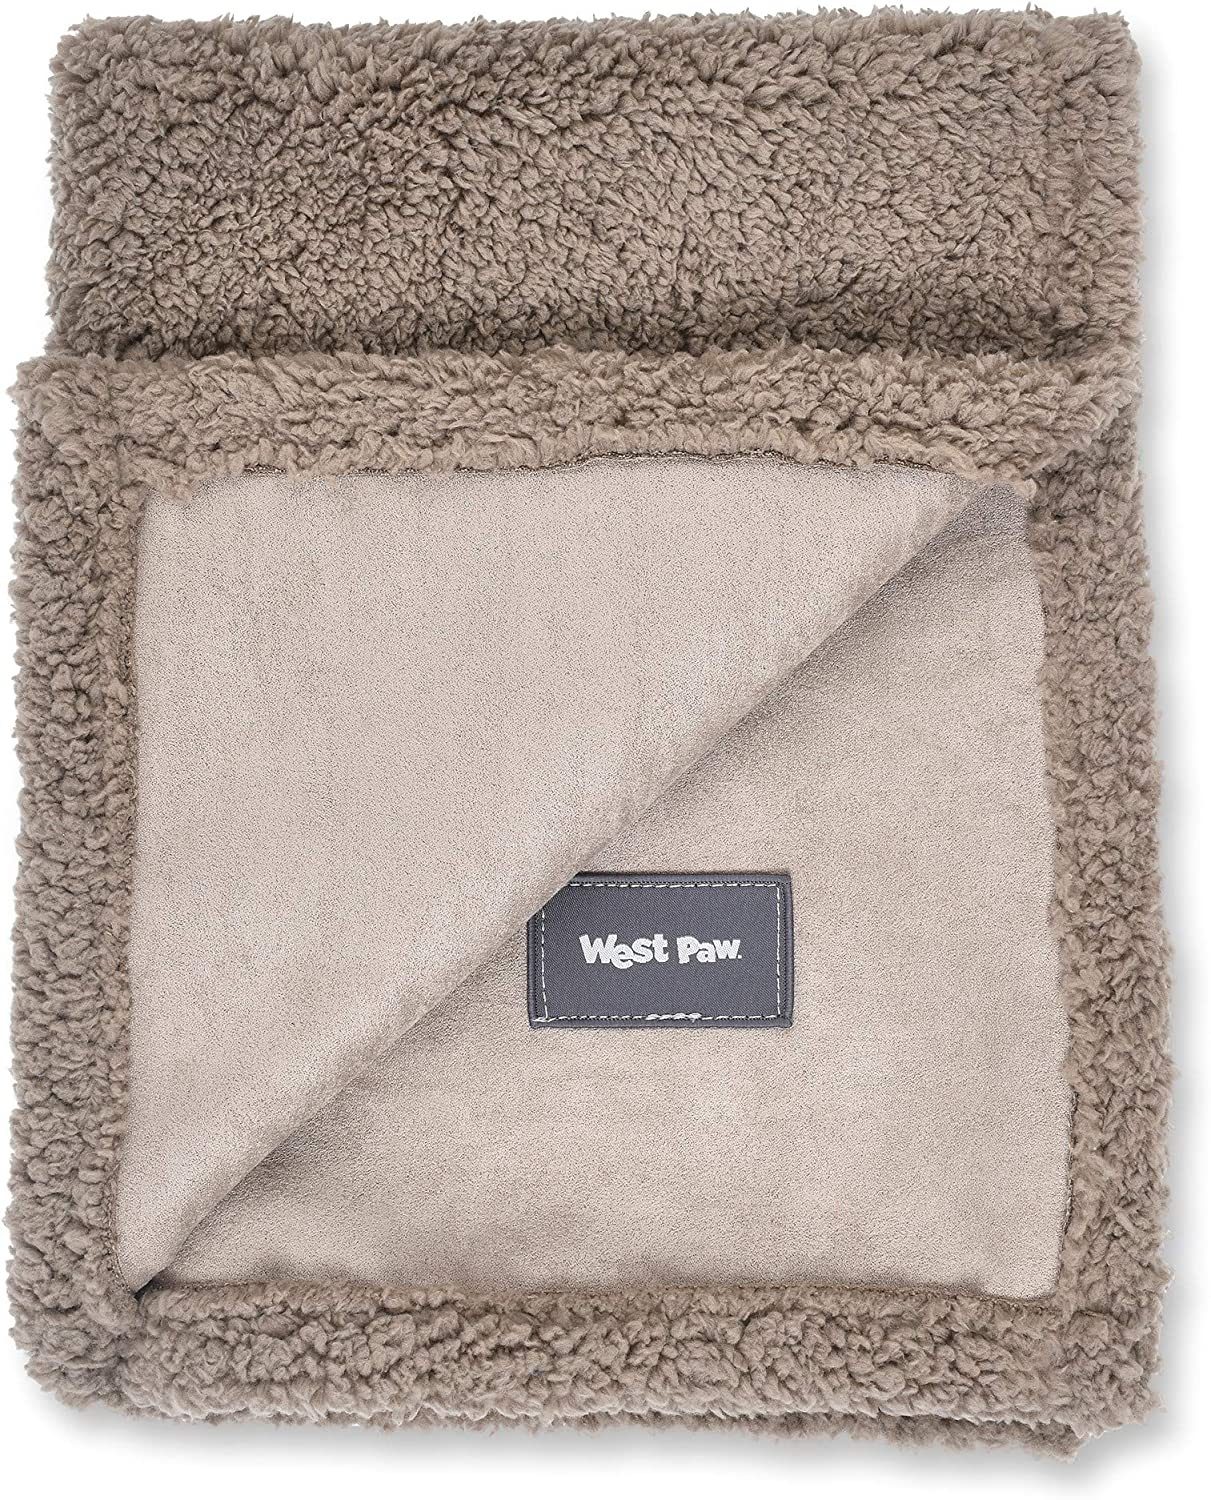 West Paw Big Sky Dog Blanket and Throw, Faux Suede/Silky Soft Fleece Pet Throw Blanket for Couch, Furniture Chair and Bed, Oatmeal, Medium